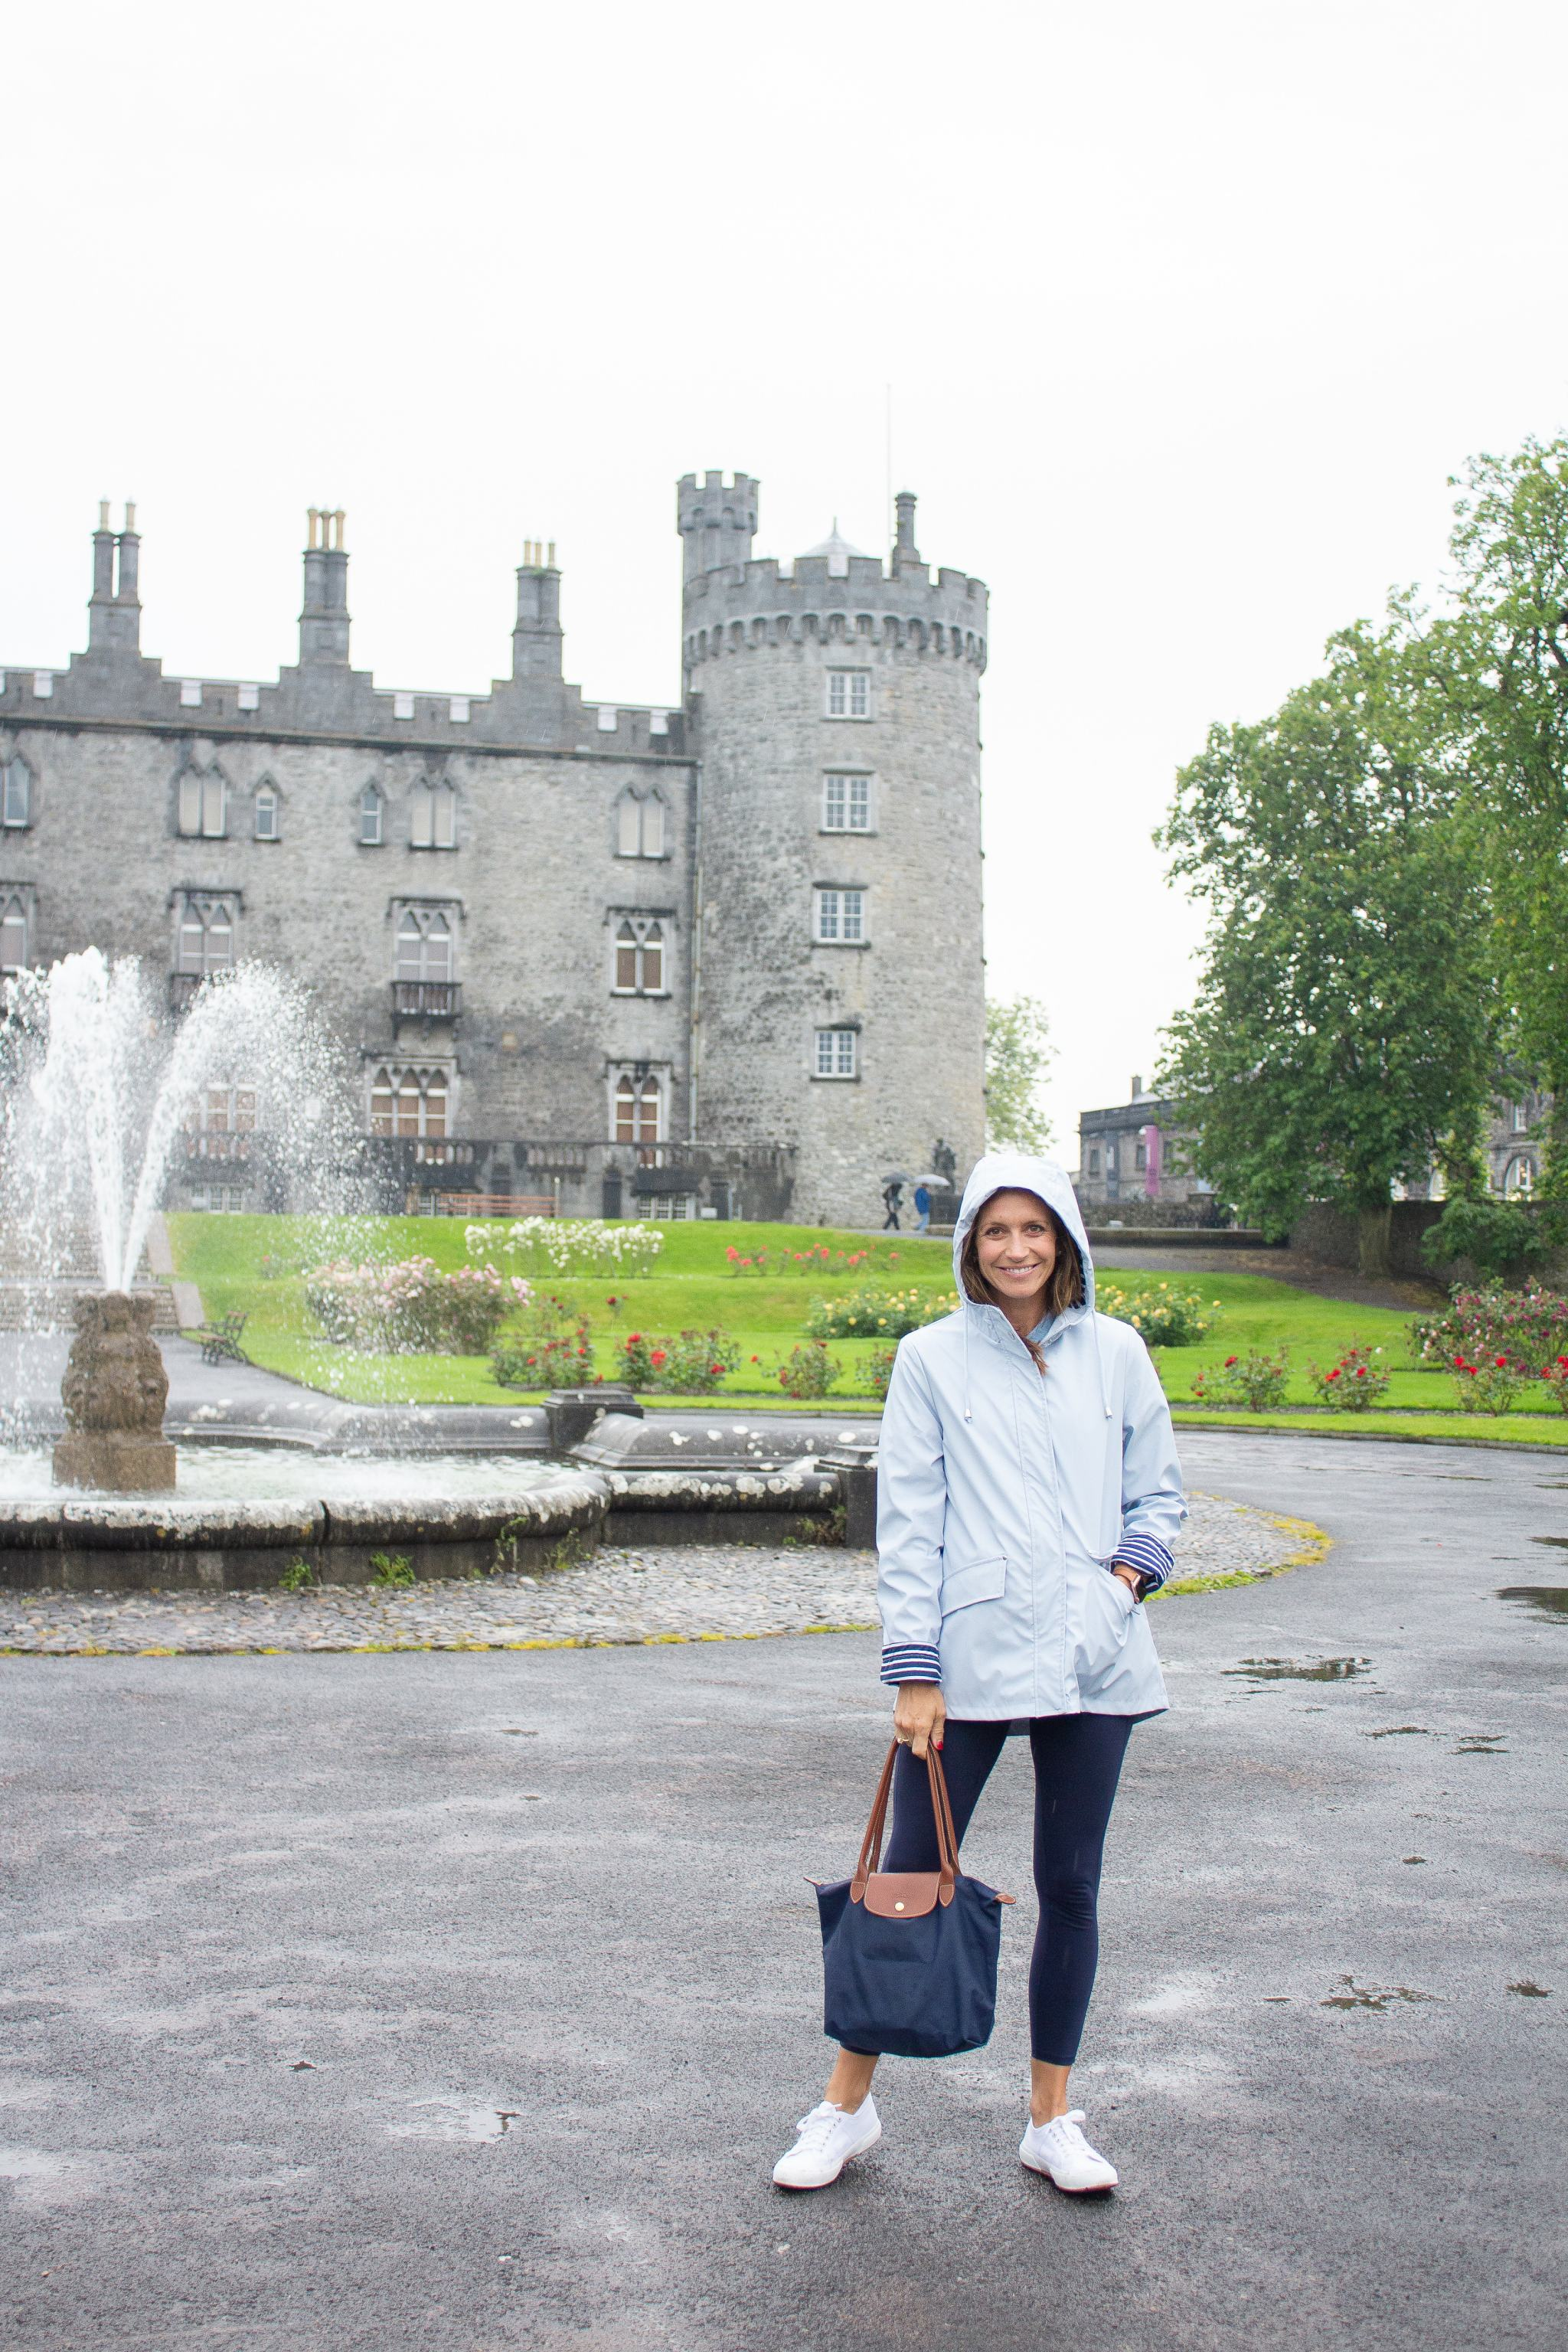 classic style - maternity style - second trimester outfit idea - pregnancy style - colorfulkoala leggings - amazon leggings - superga cotu sneakers - white superga sneakers - cute rain jacket - traveling in Ireland - killkenny castle - sneakers and leggings -